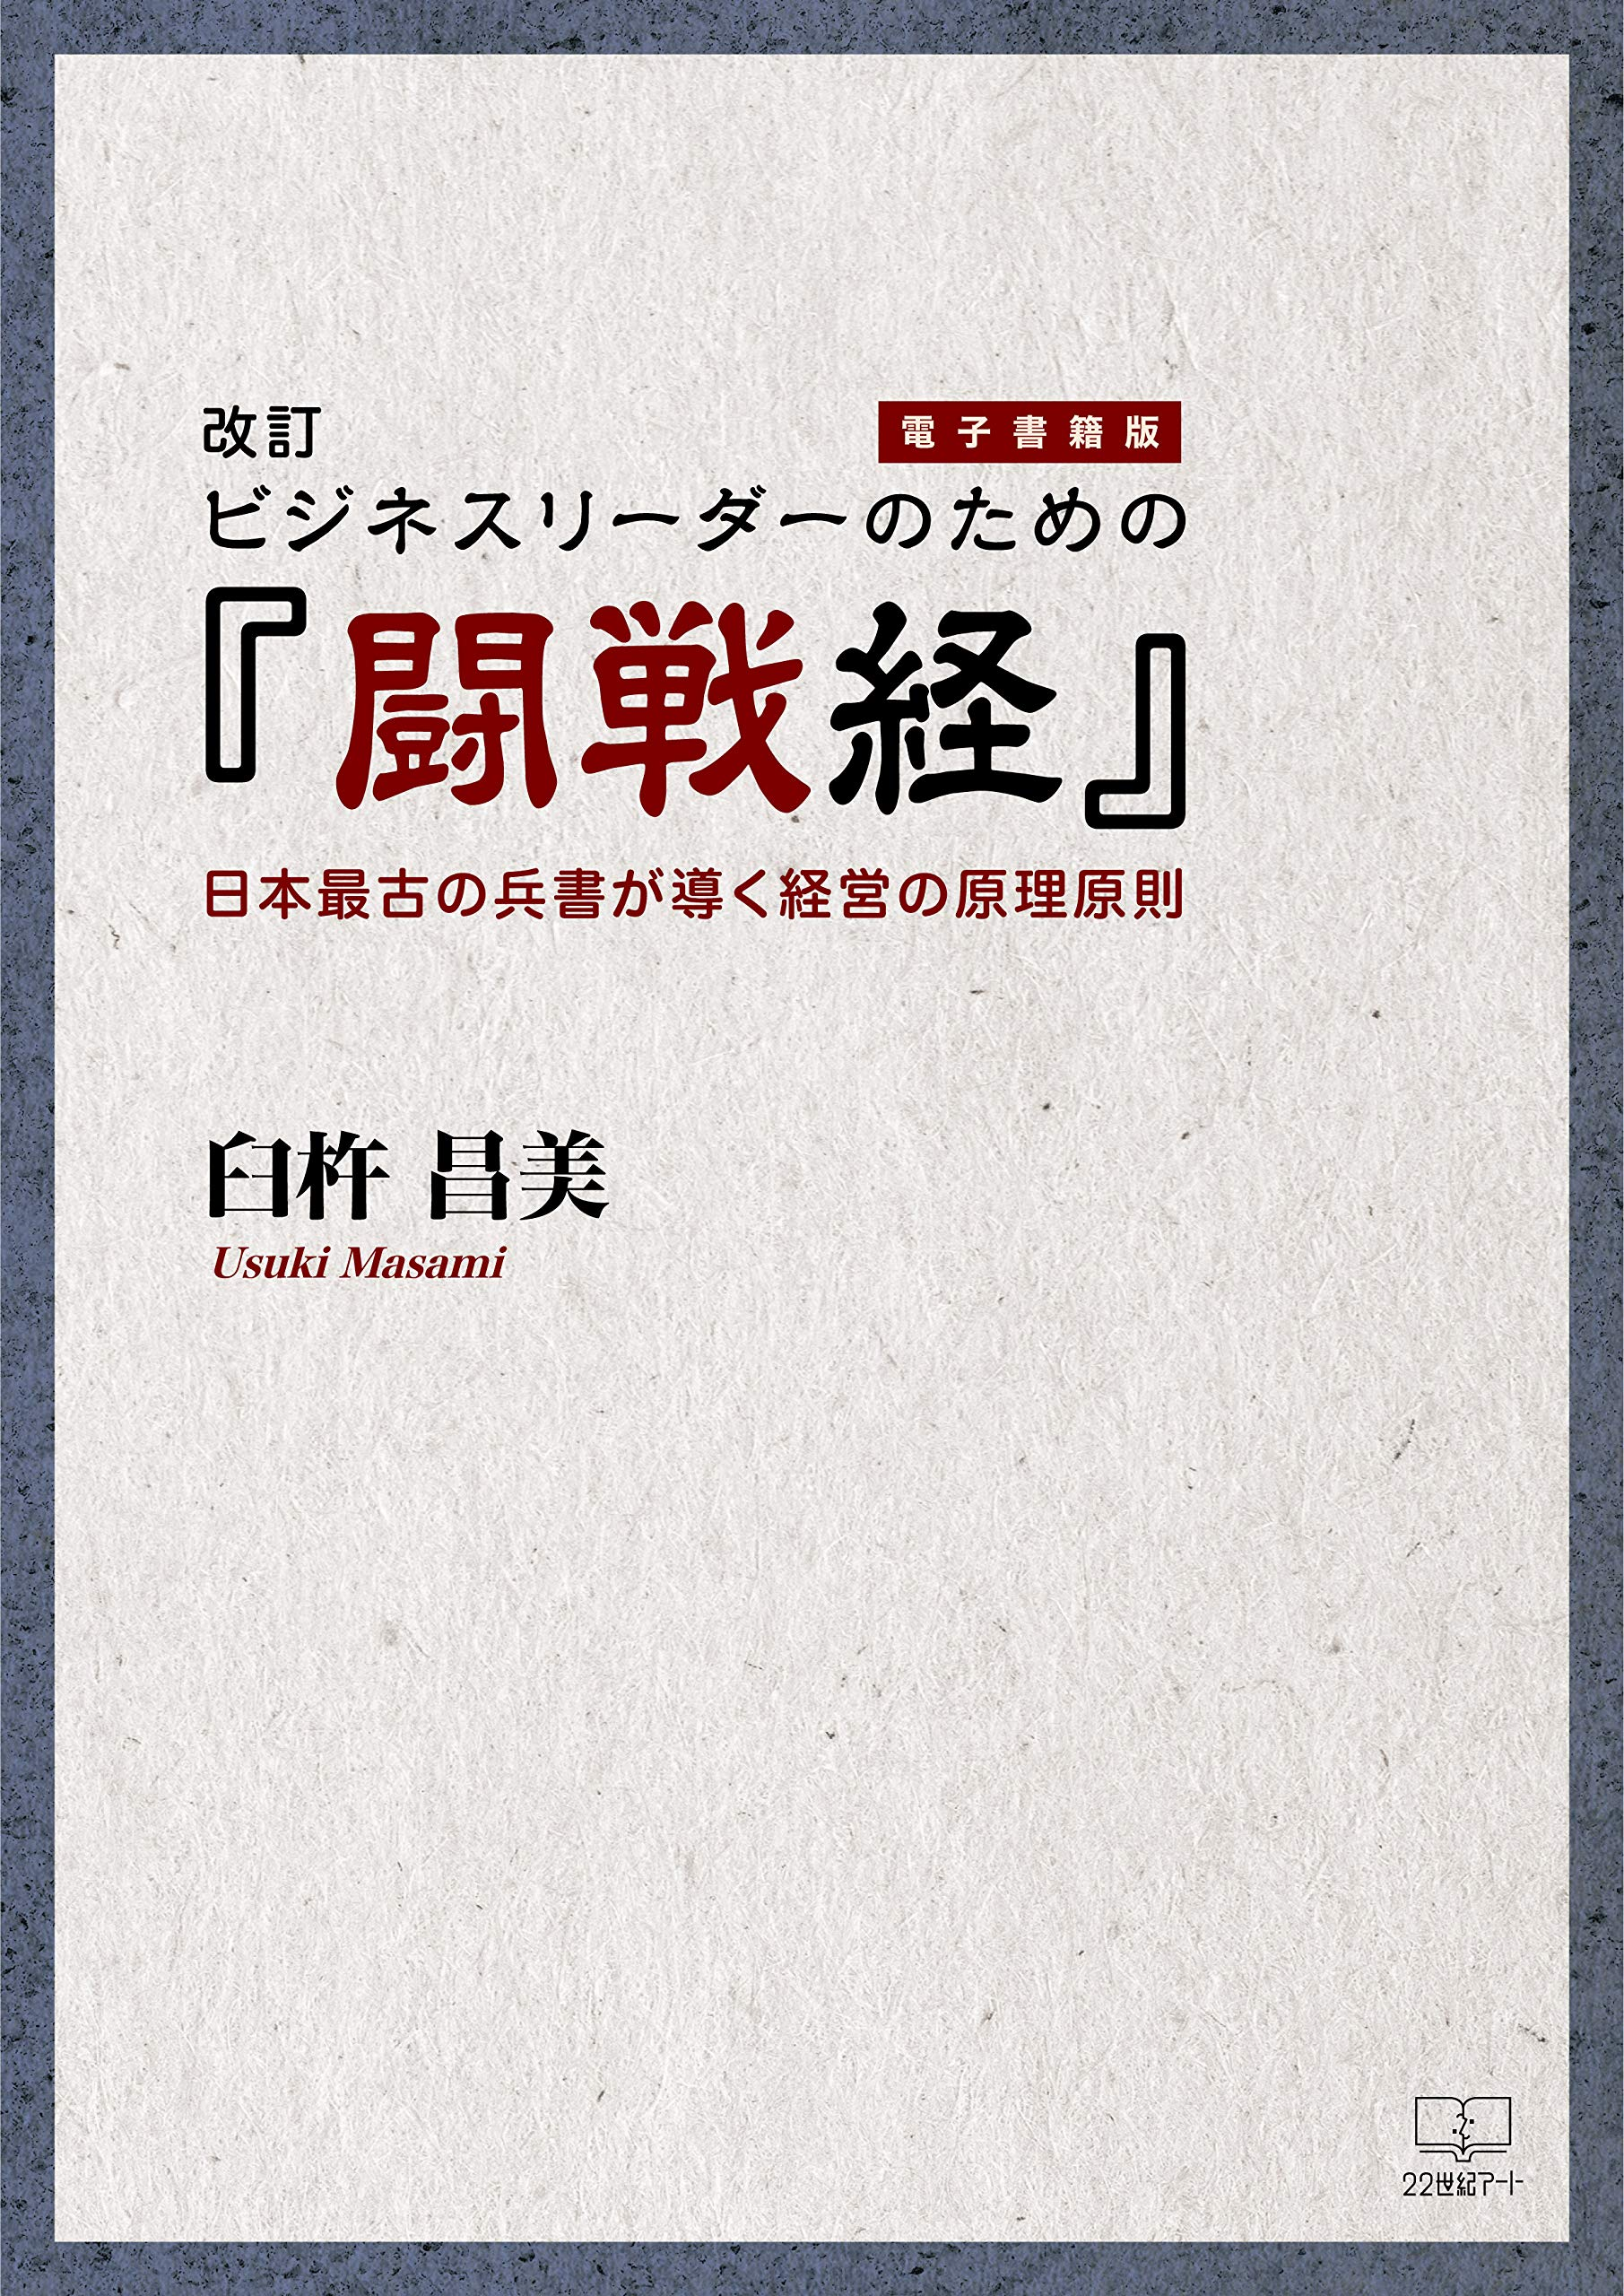 Revised Battle Kei for business leaders: Management Principles Guided by Japans Oldest Soldiers (Japanese Edition)